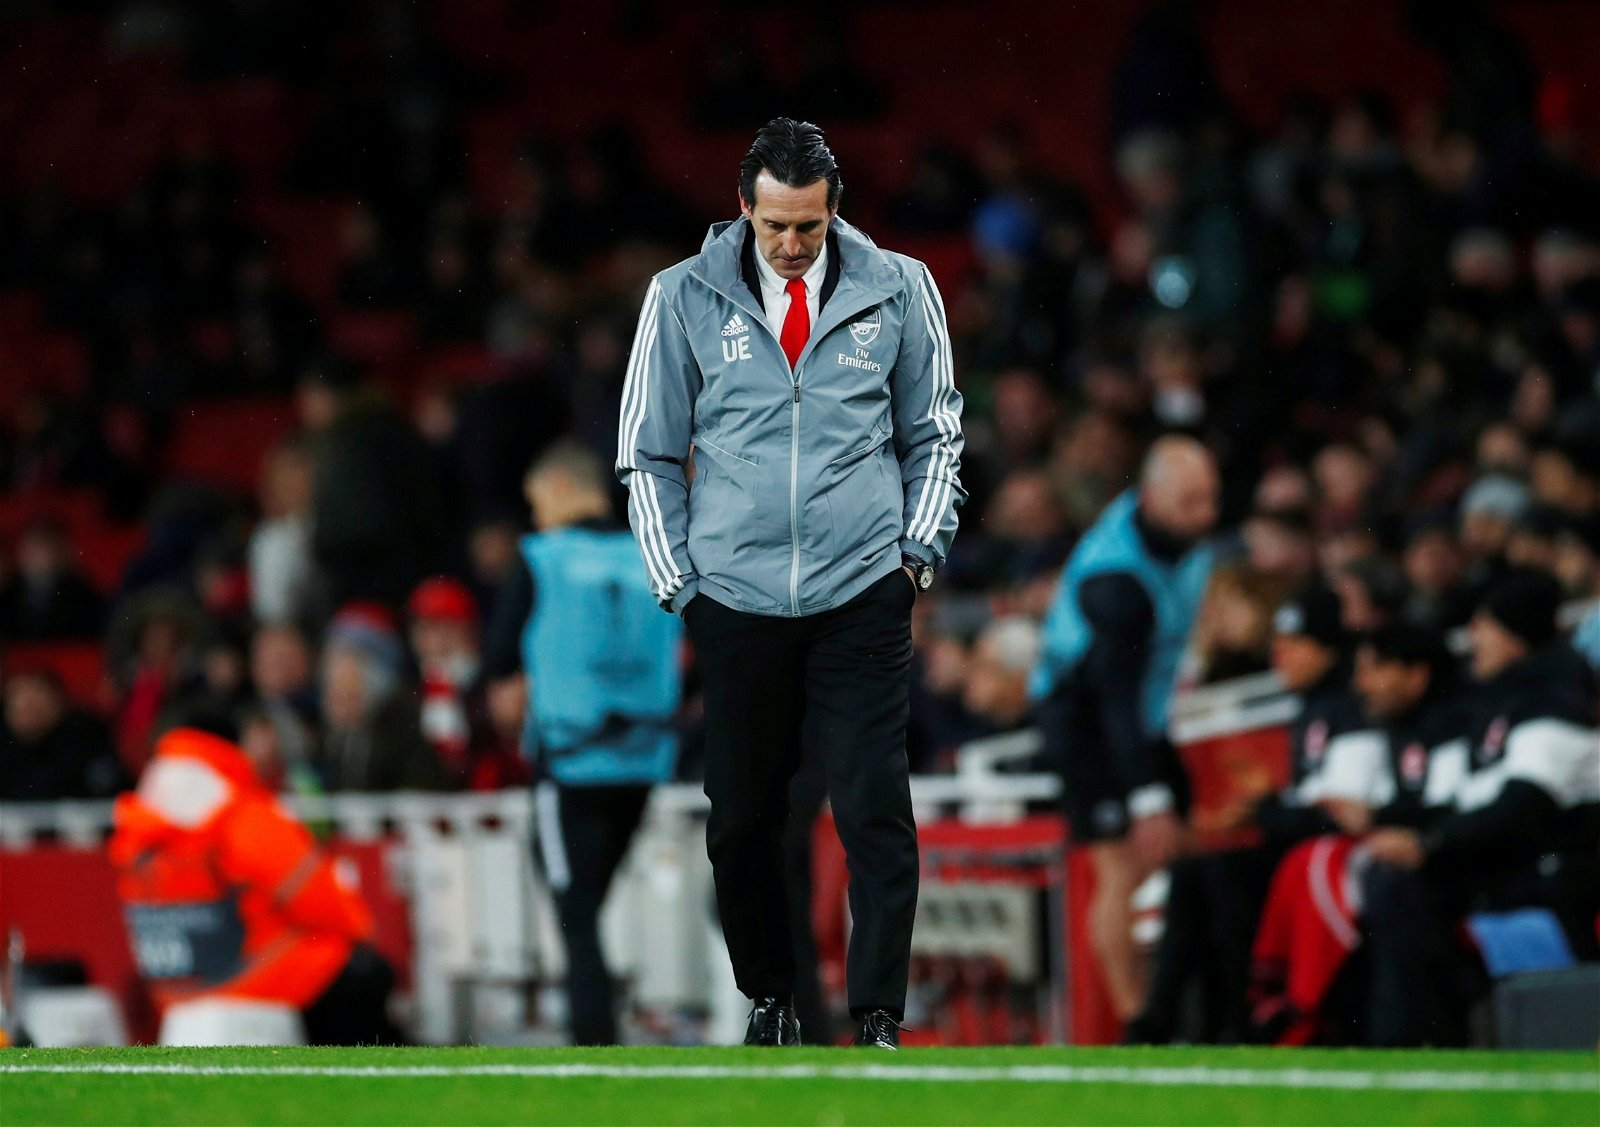 Unai Emery's Arsenal sacking is laced with dramatic irony